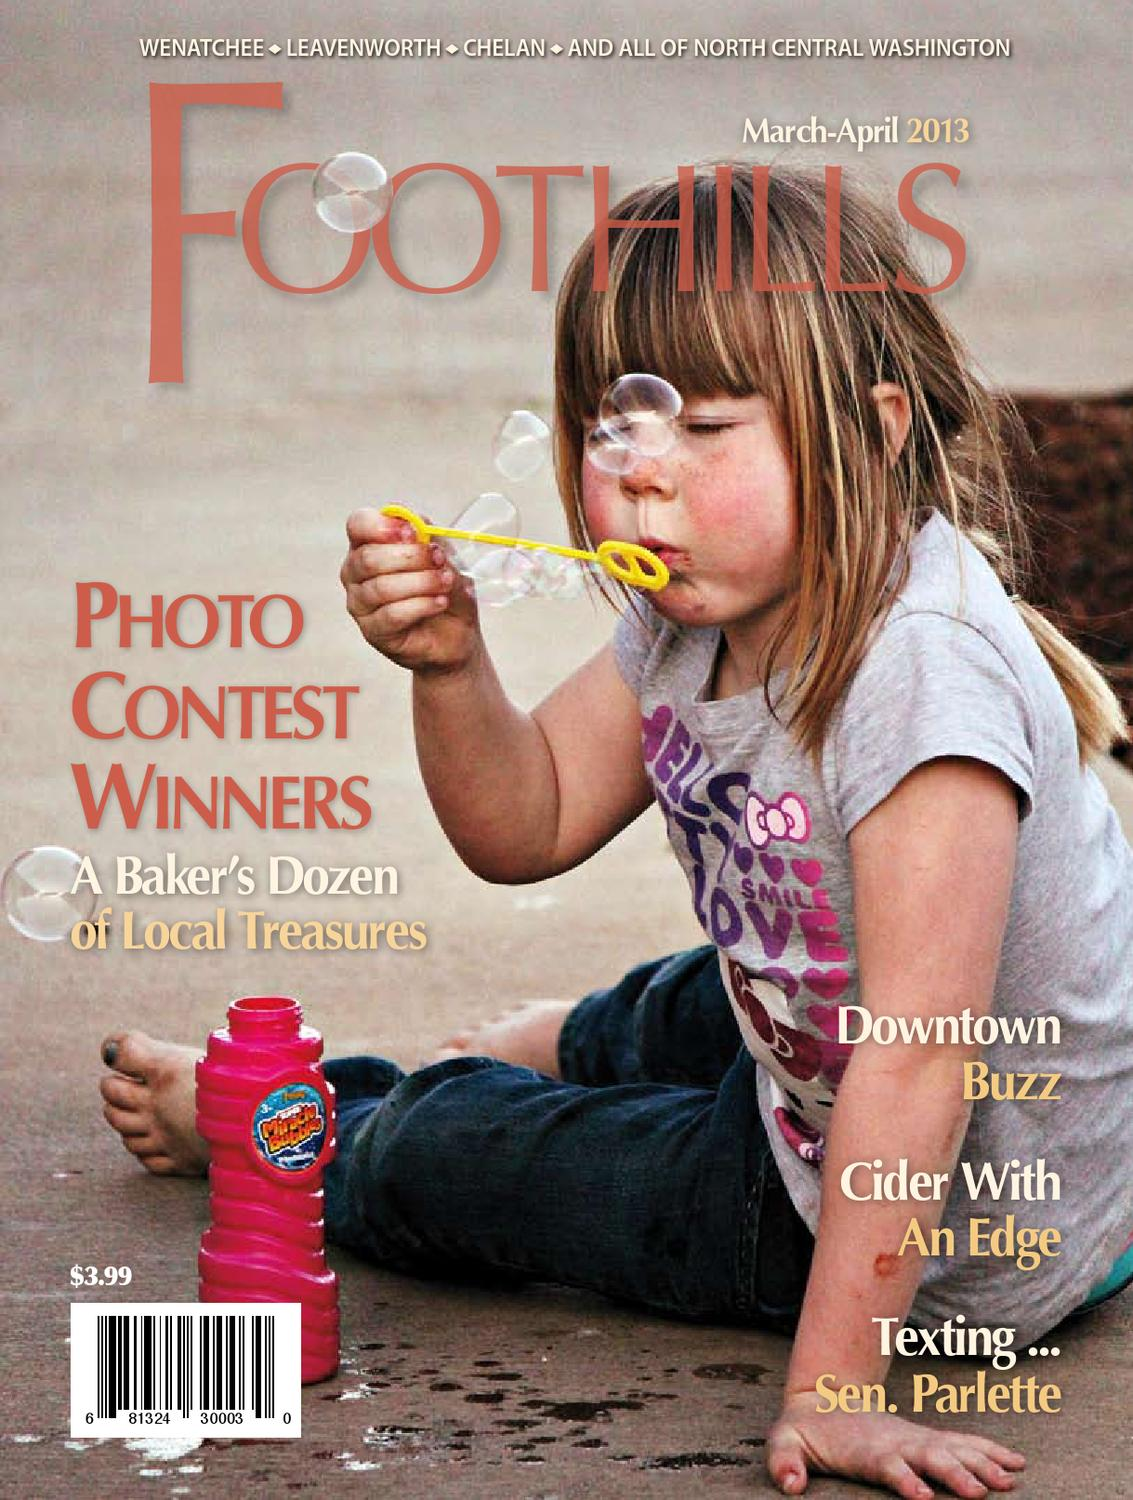 Foothills Magazine Mar-Apr 2013 Photo Contest Winners by The